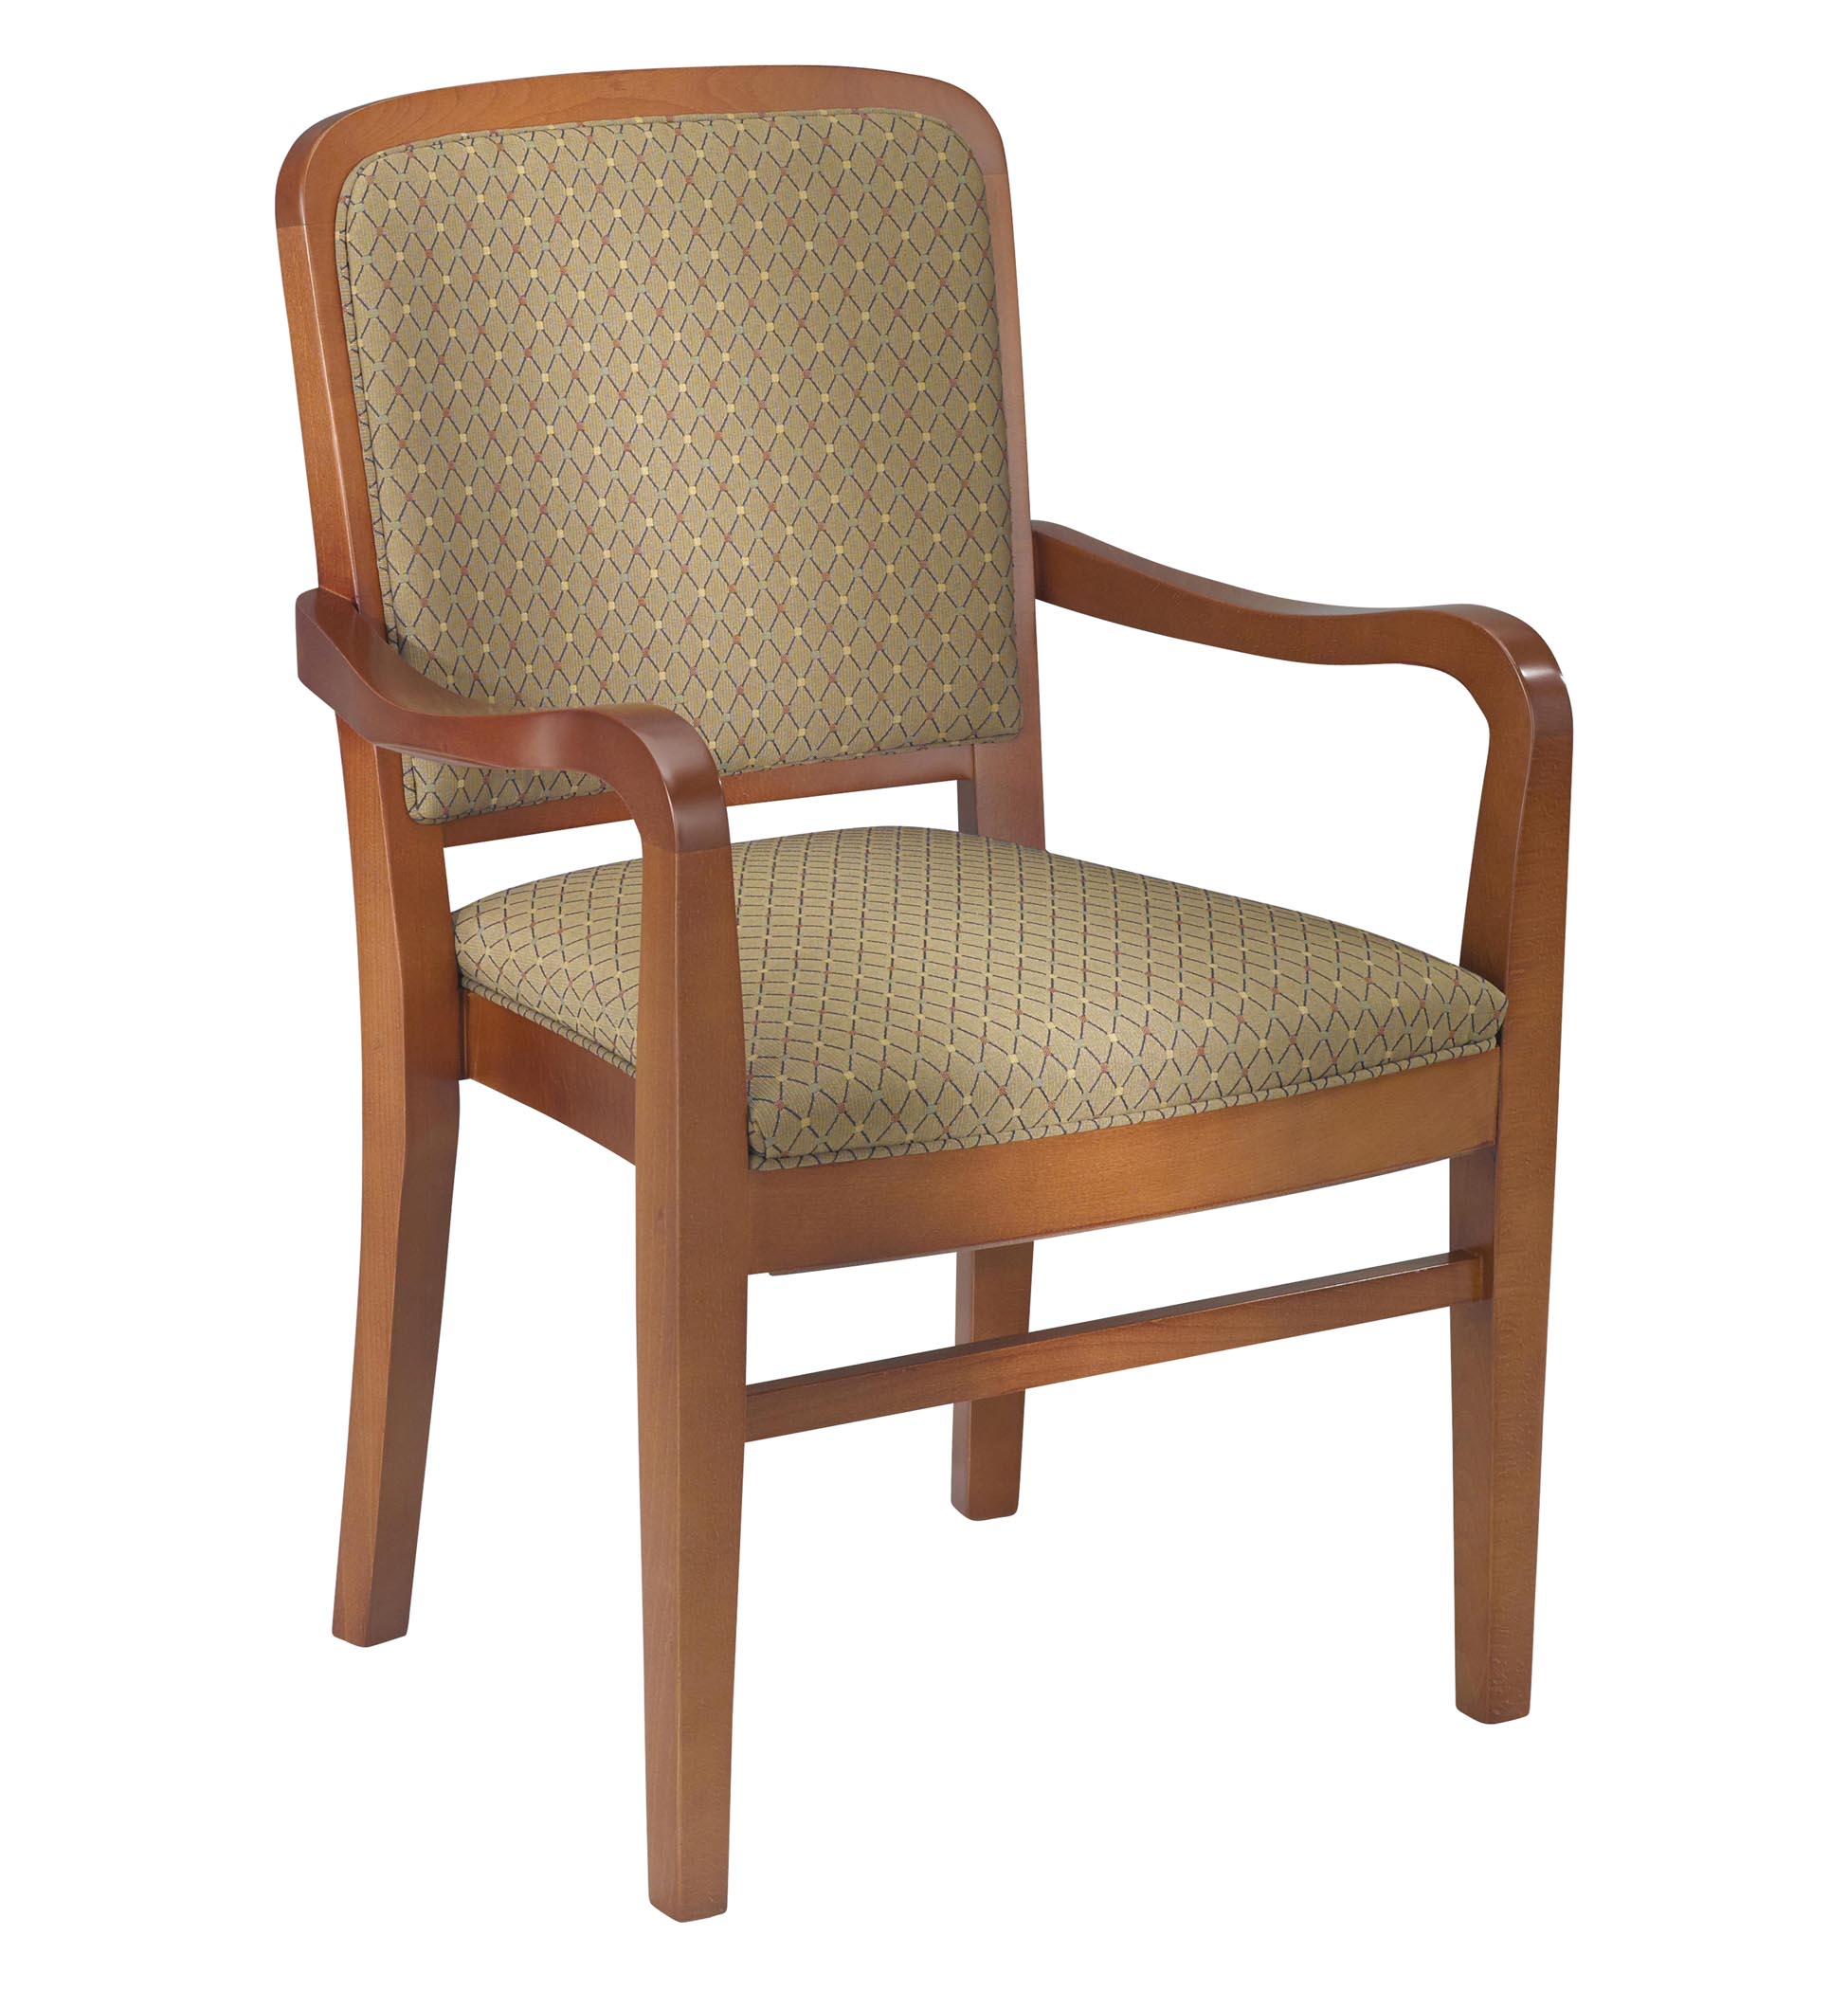 Wooden Arm Chair 2760 Stacking Wood Arm Chair